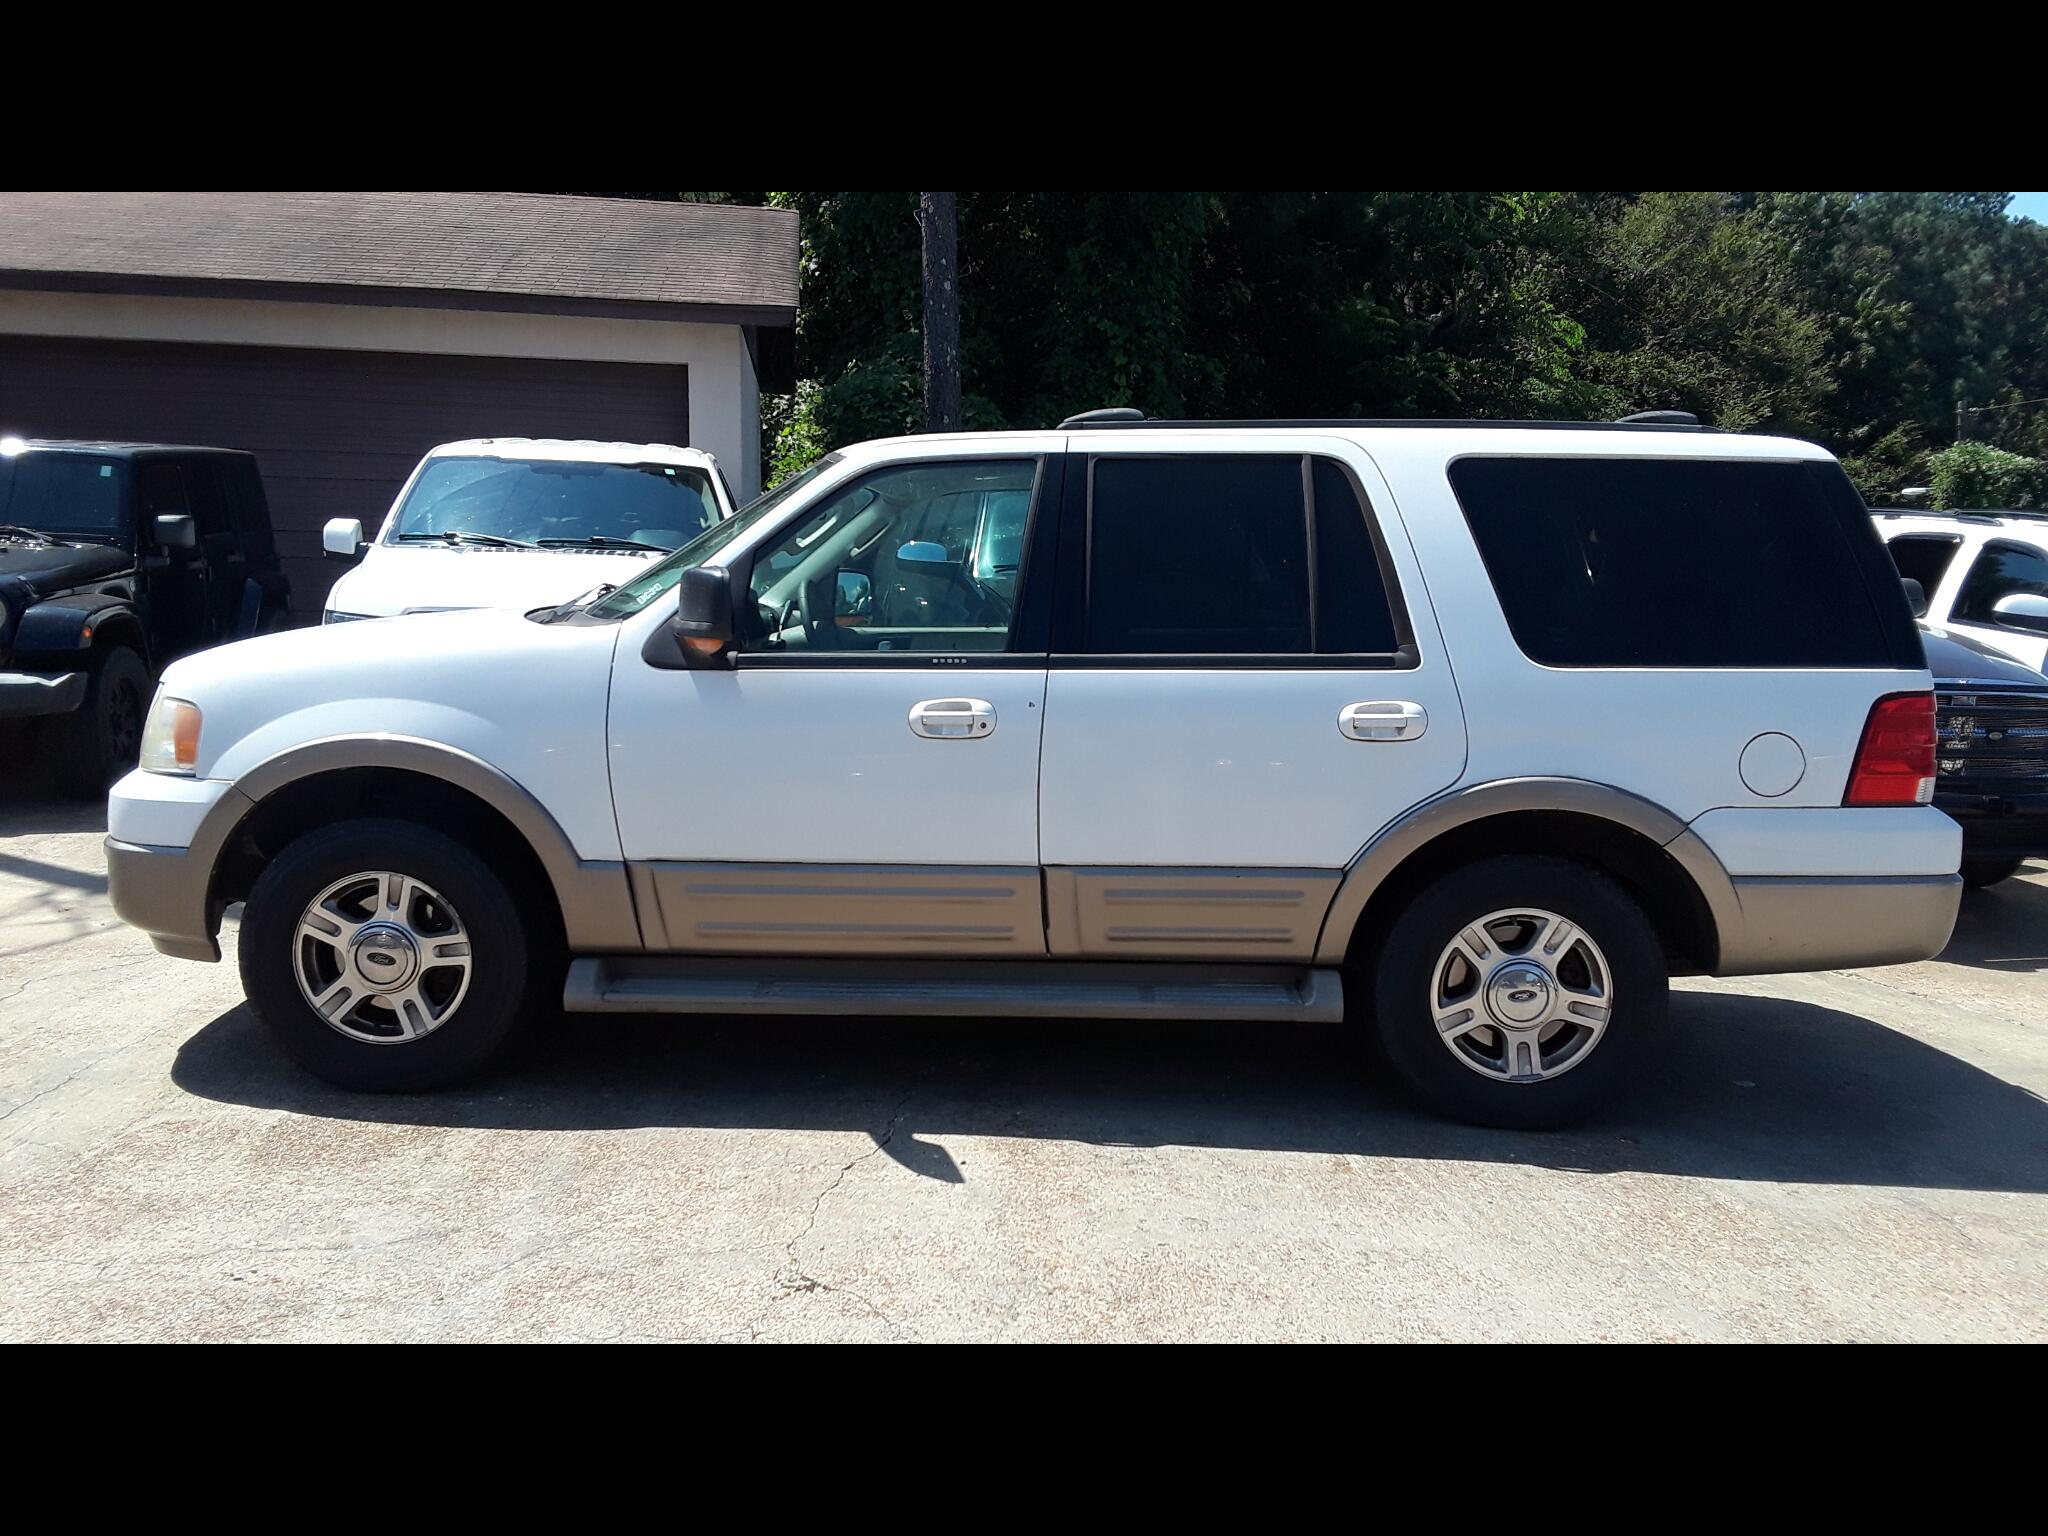 2004 Ford Expedition 5.4L Eddie Bauer